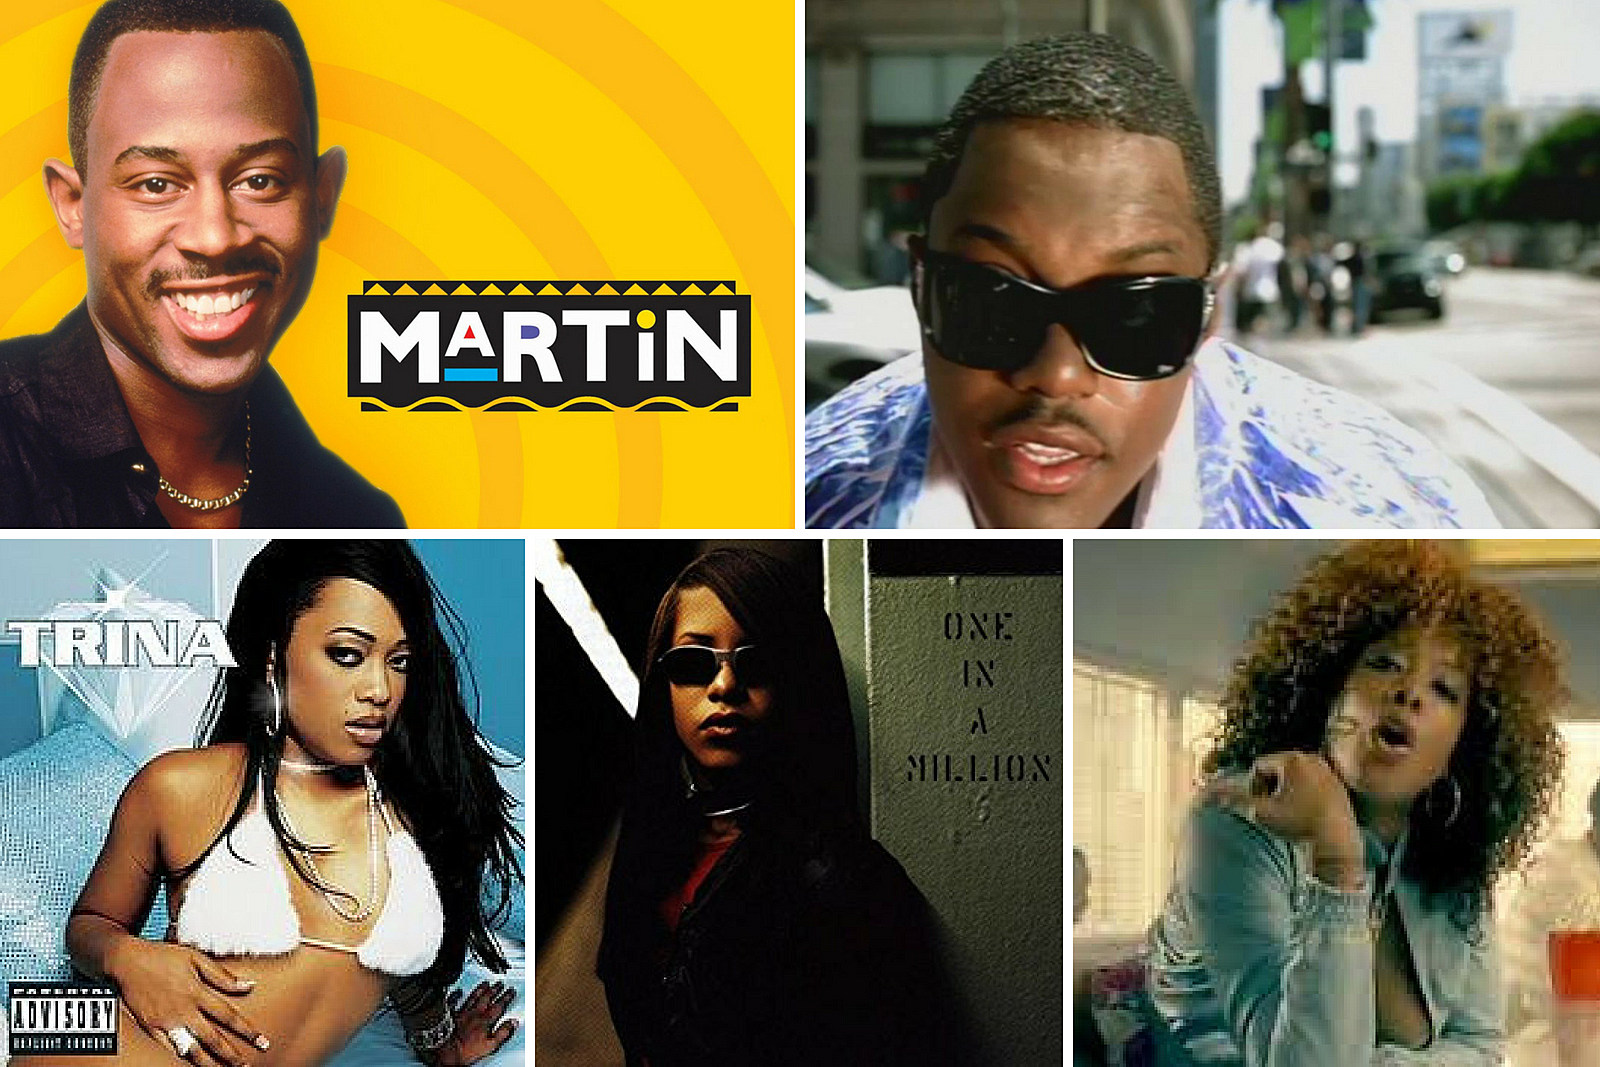 Martin Makes A Splash On Fox August 27 In Hip Hop History